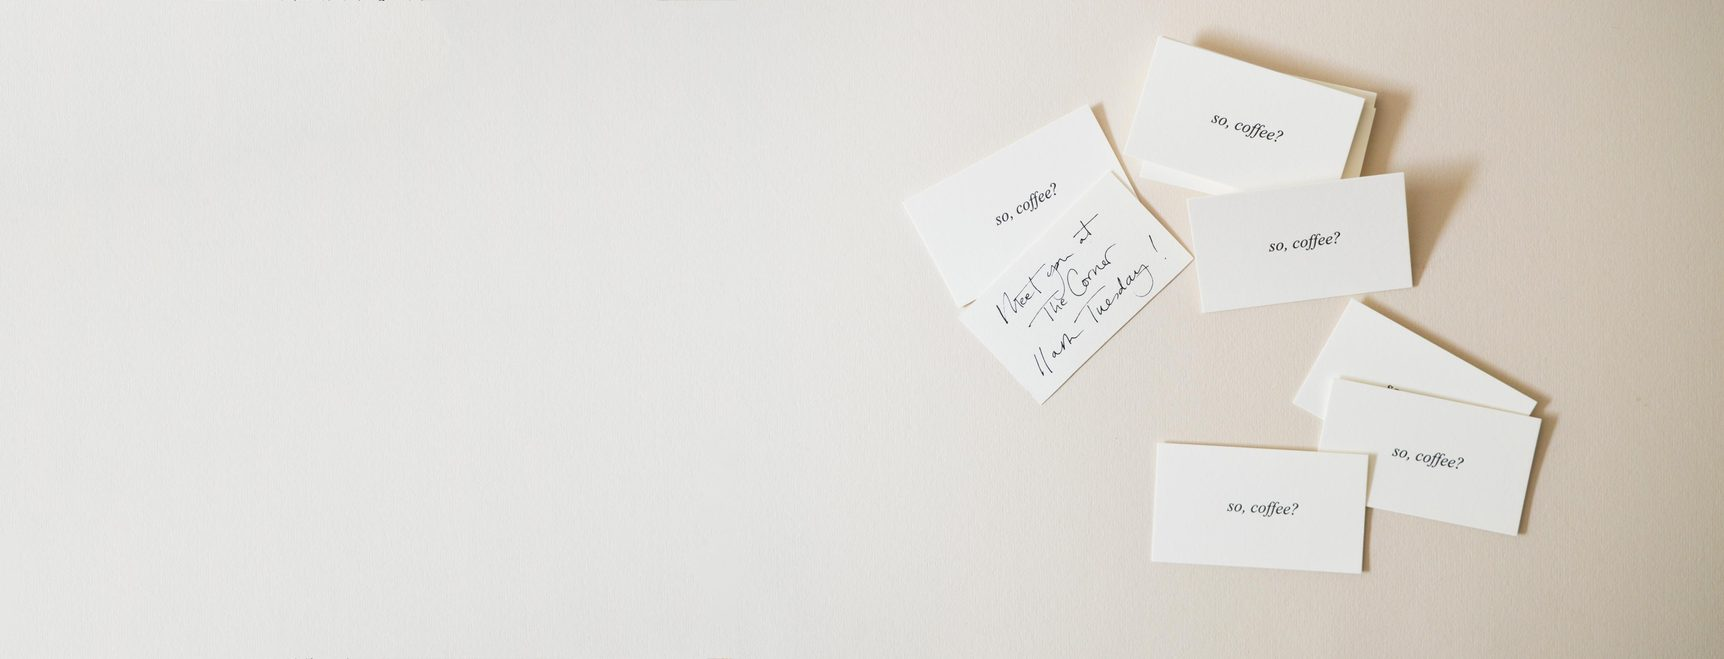 Correspondence | Handwritten Notes, Notcards, Envelopes & Personalised Stationery | Quill London